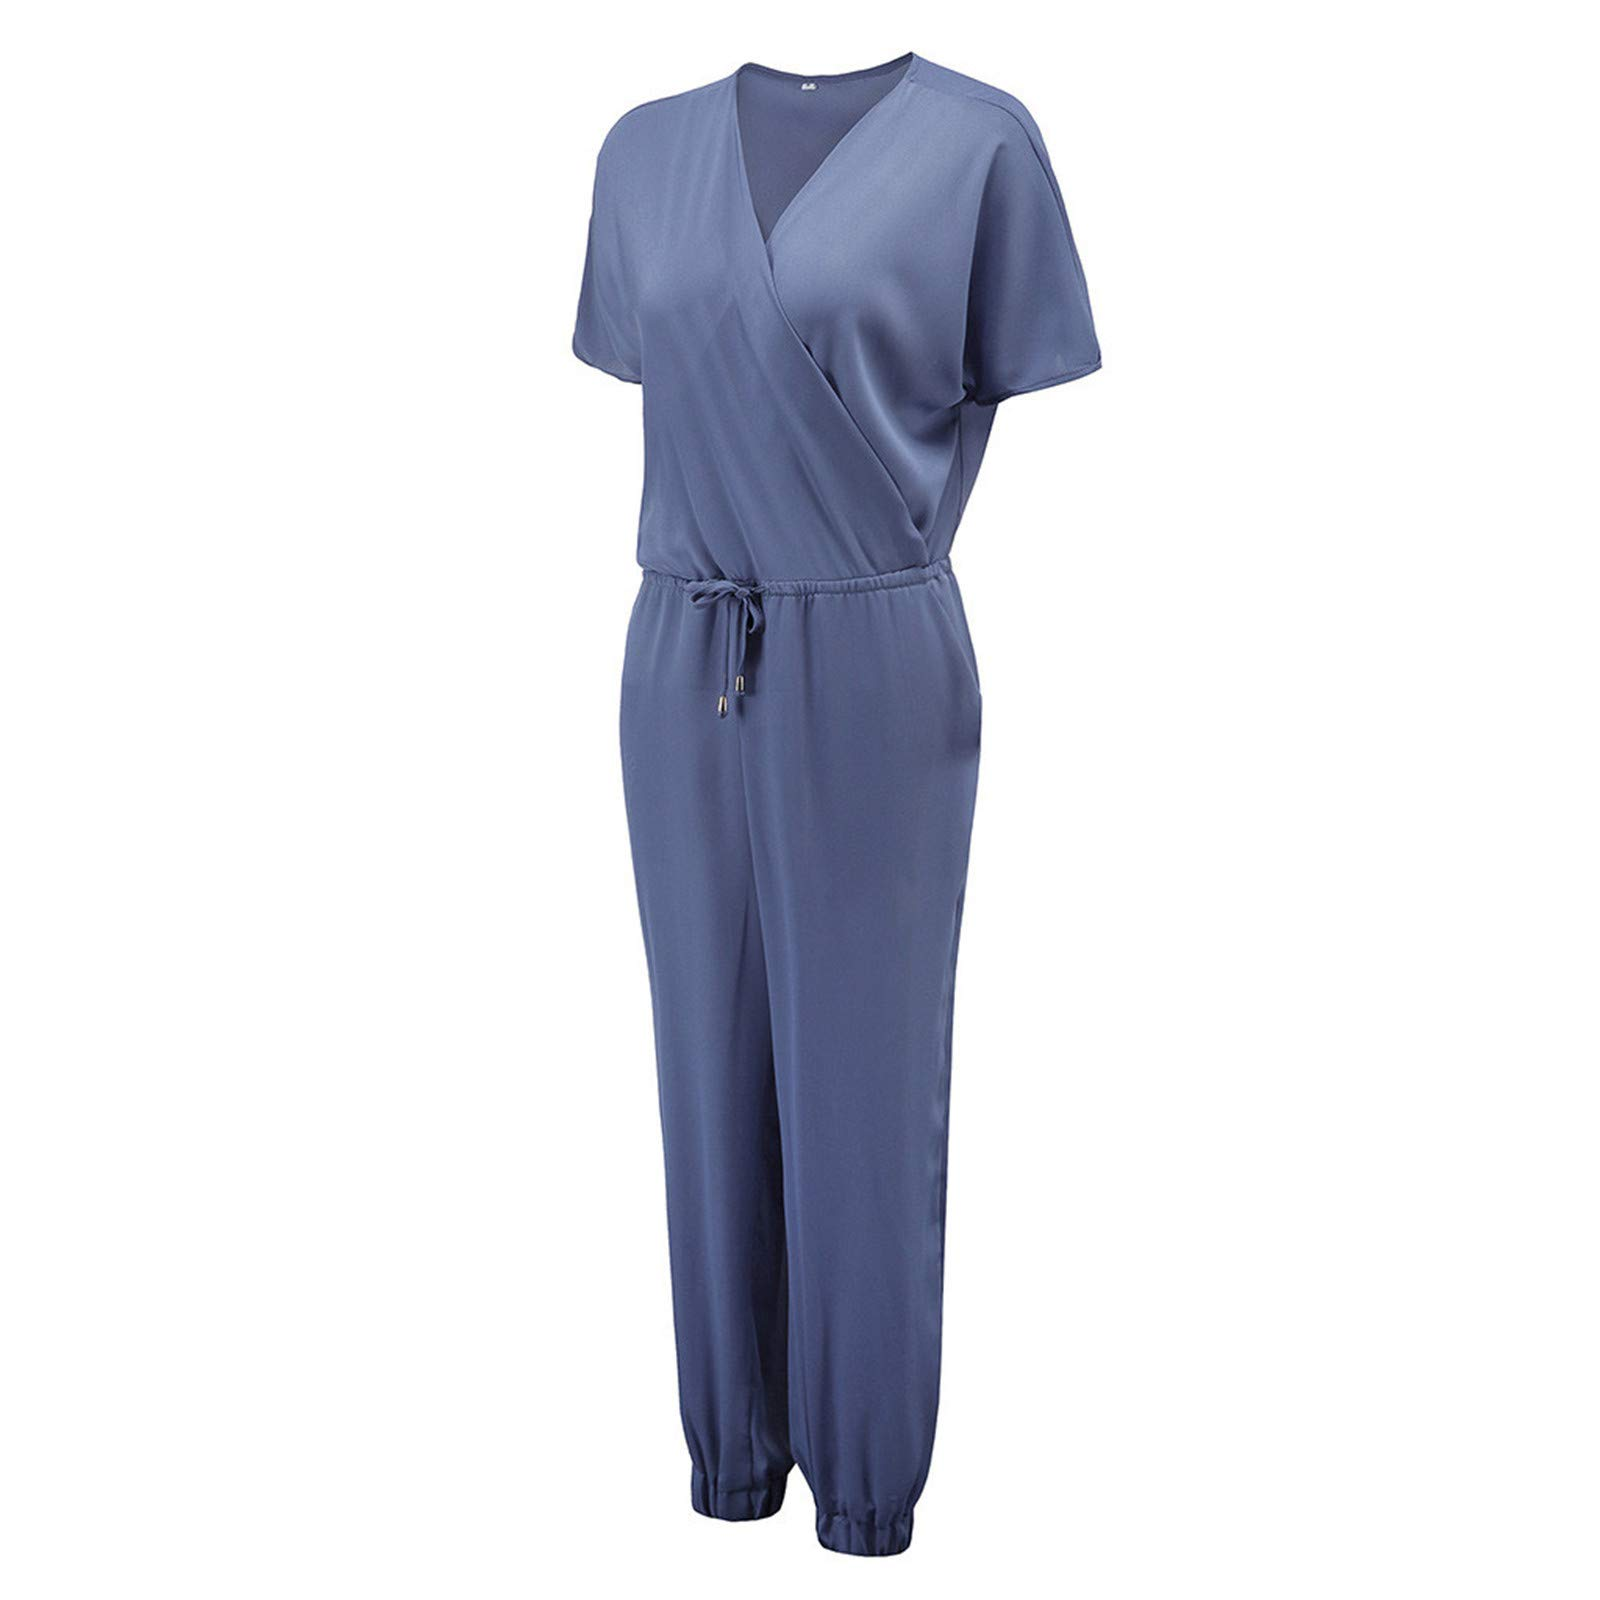 Thenxin Short Sleeve Jumpsuit for Women V Neck Elastic Waist Drawstring Beam Foot Baggy Romper(Sky Blue,M)